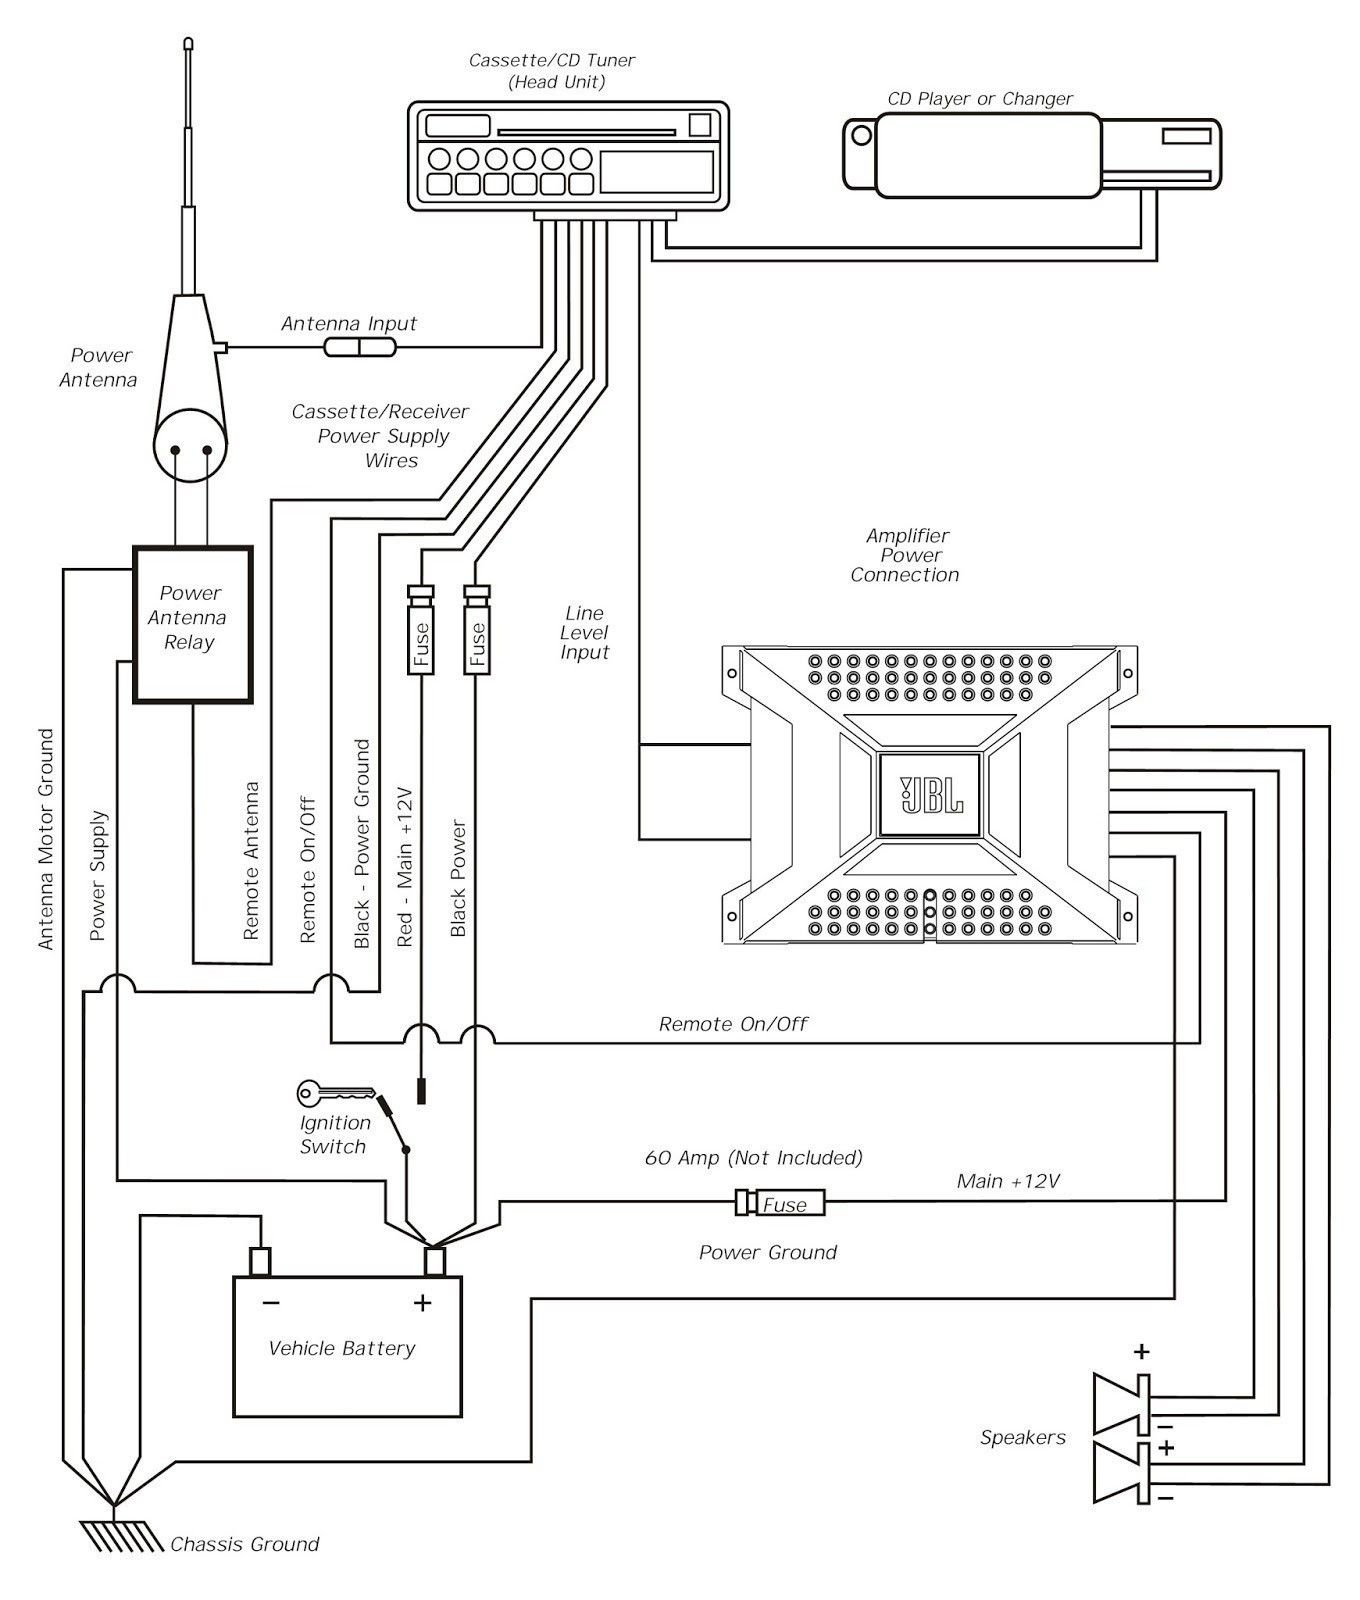 2008 audi a3 wiring diagram read all wiring diagram Audi A3 Dimensions